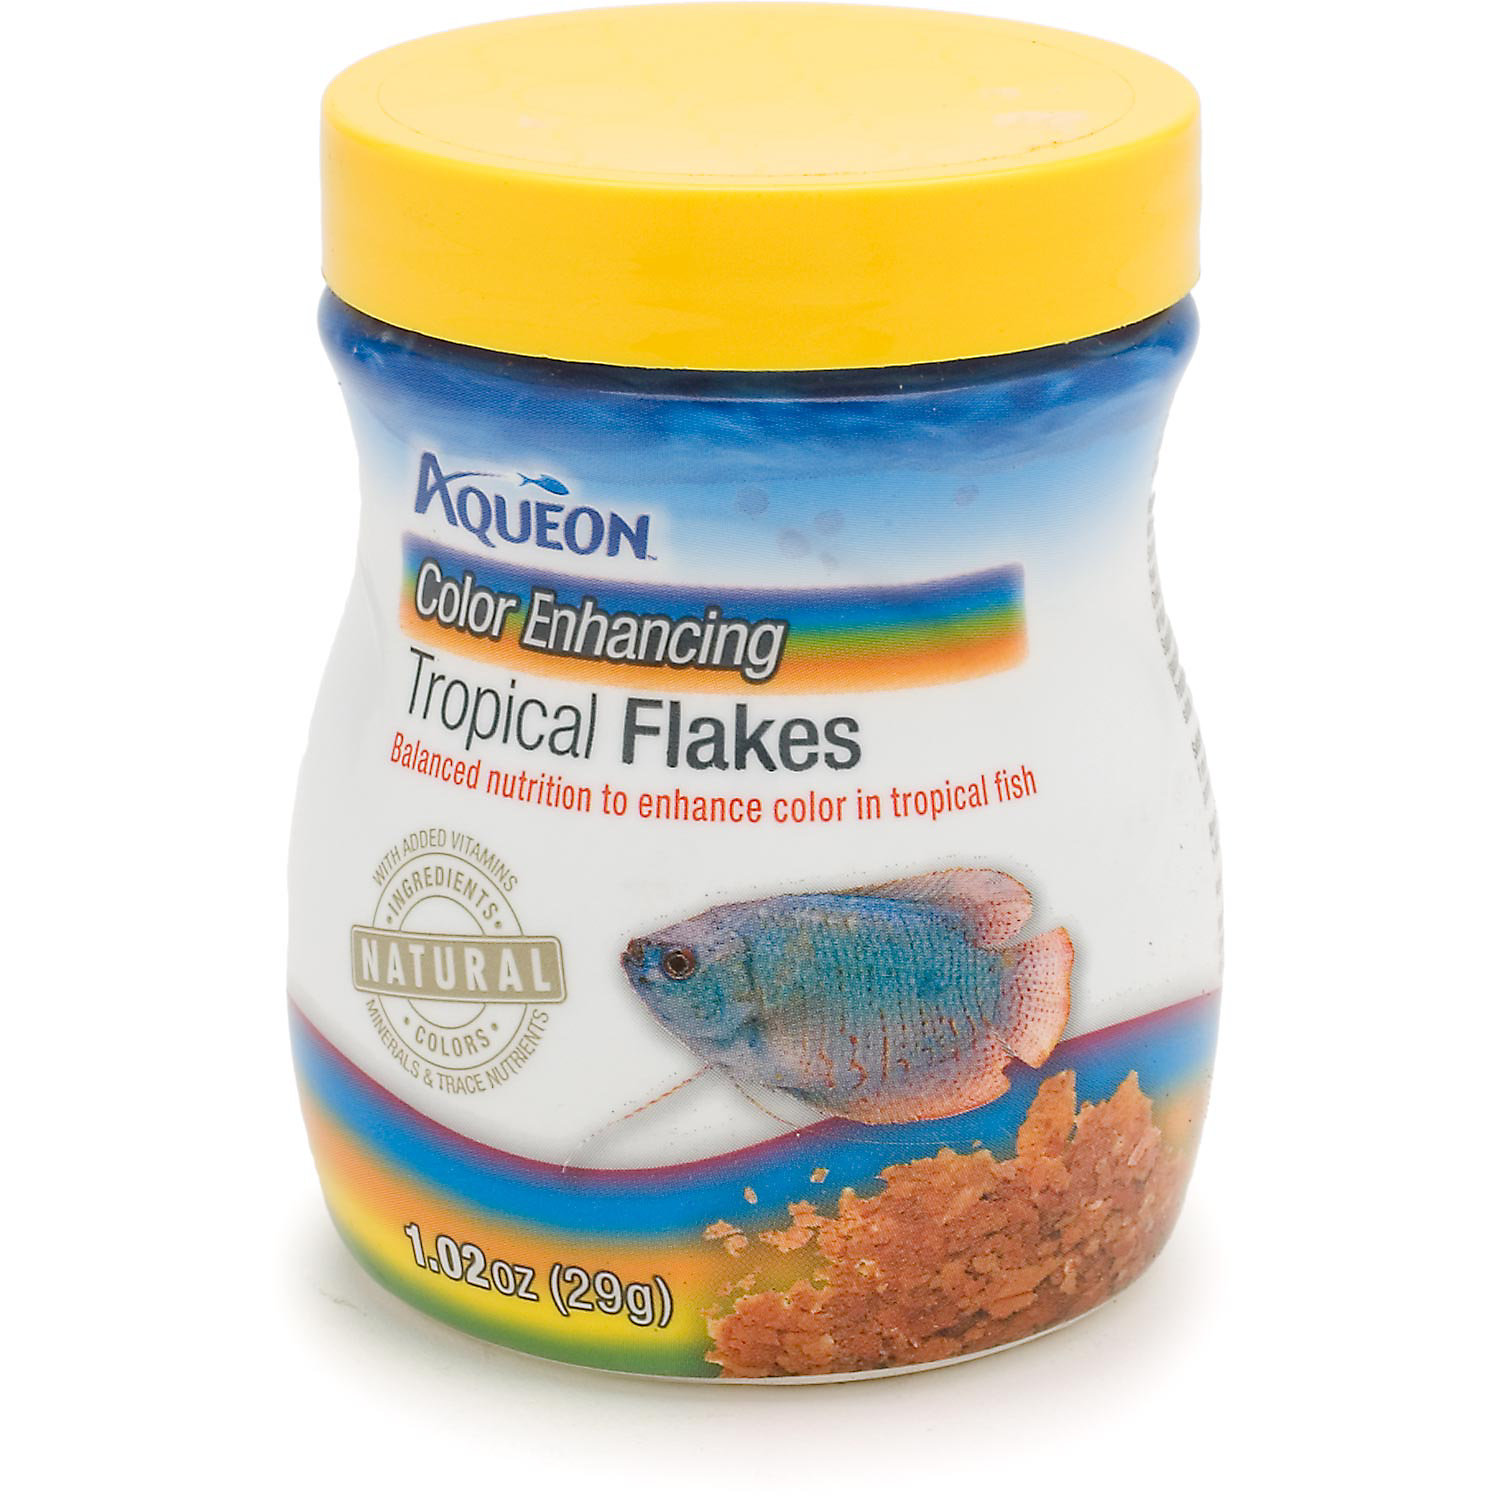 Aqueon Color Enhancing Tropical Flakes 1.02 Oz.